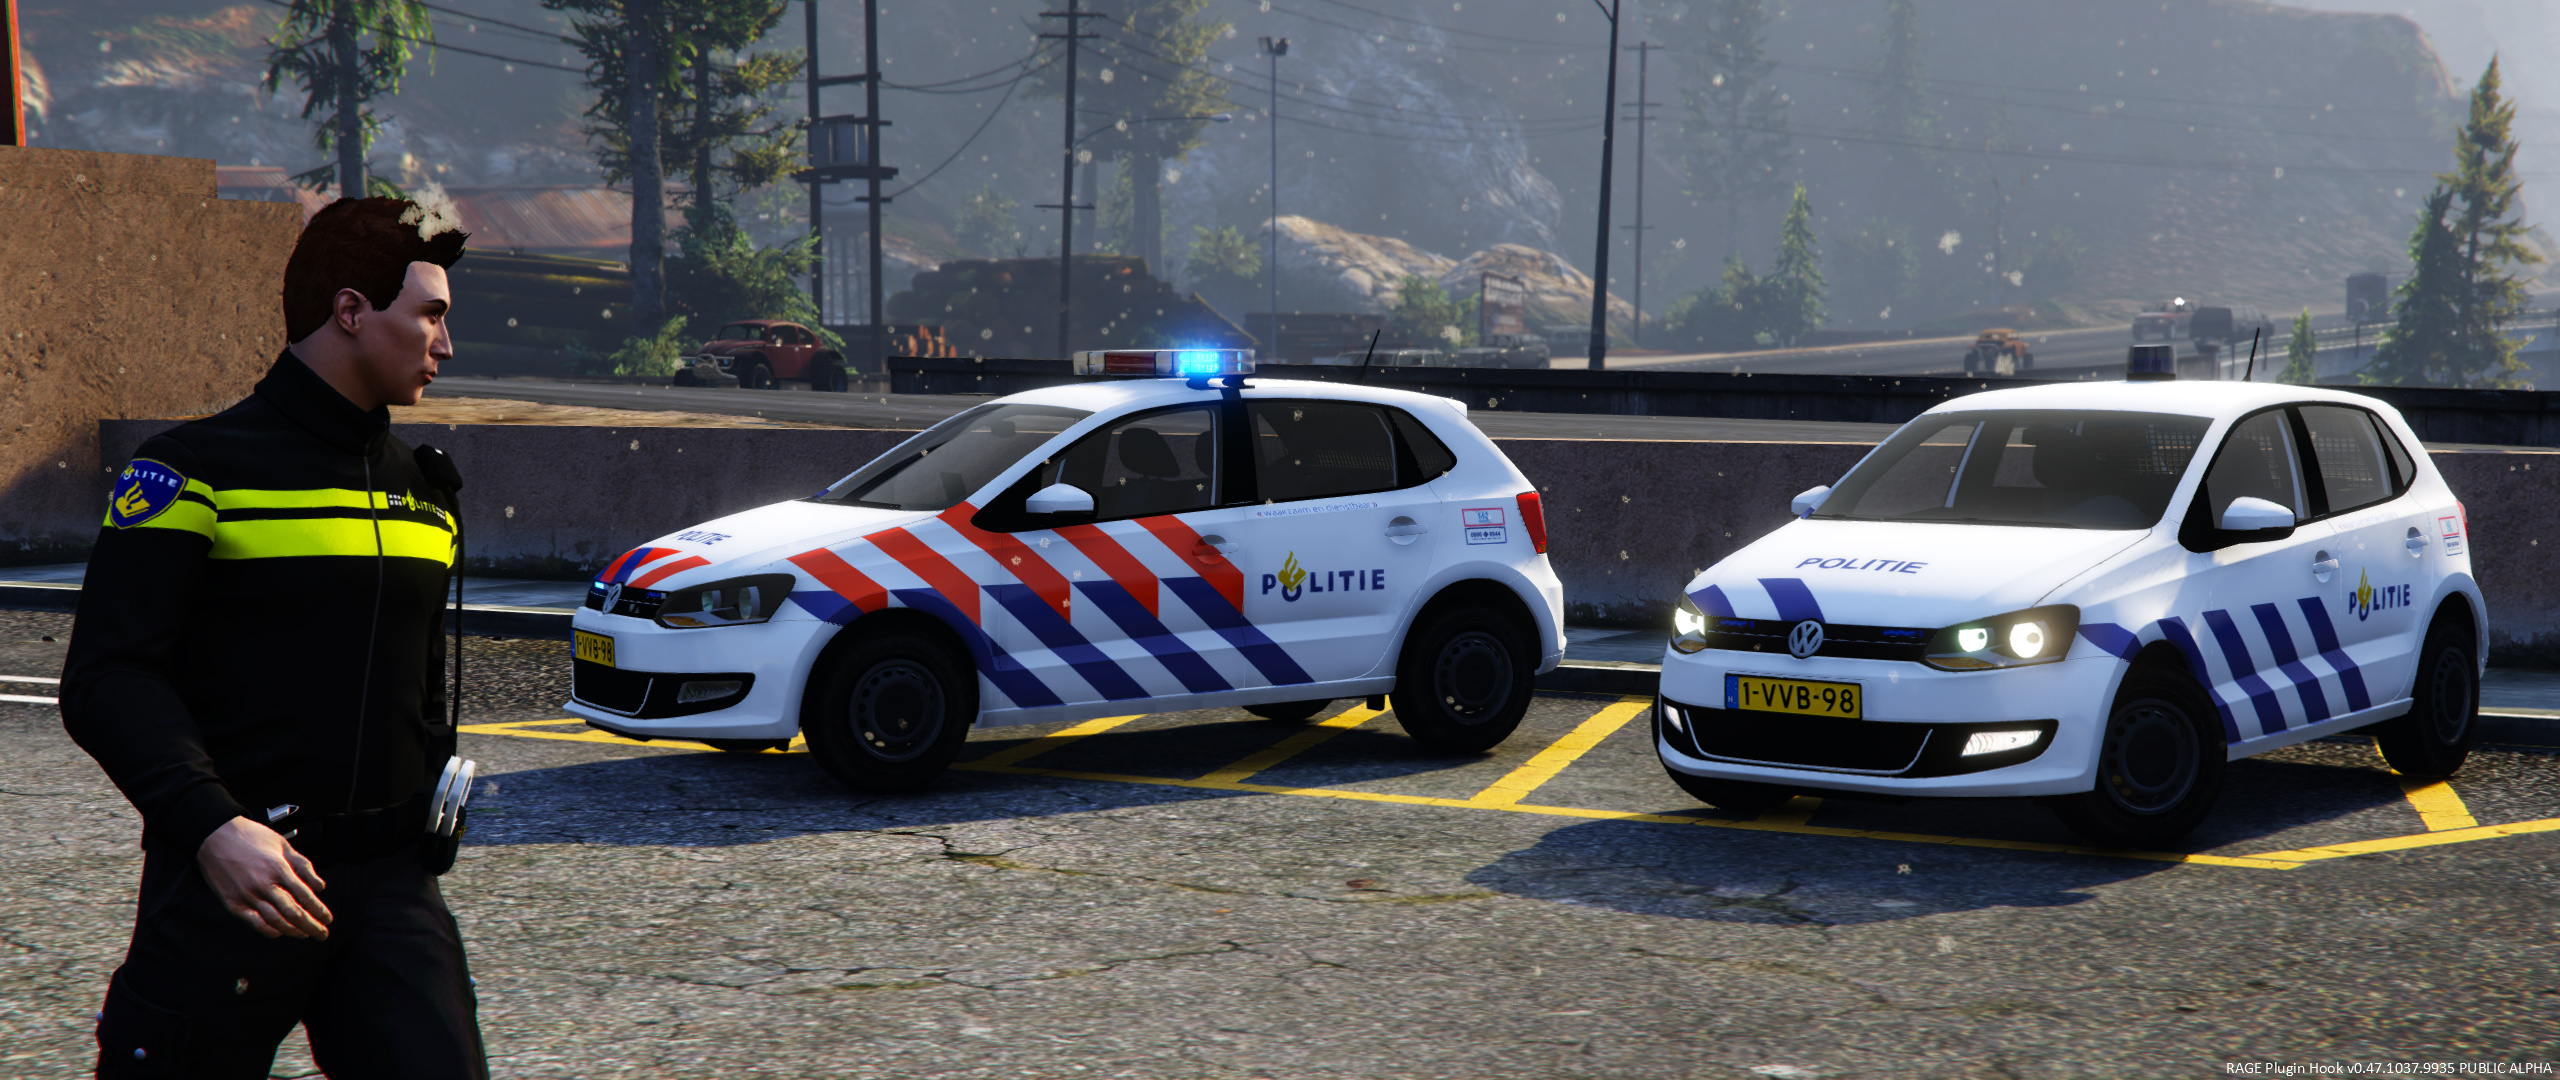 volkswagen polo dutch police gta5. Black Bedroom Furniture Sets. Home Design Ideas